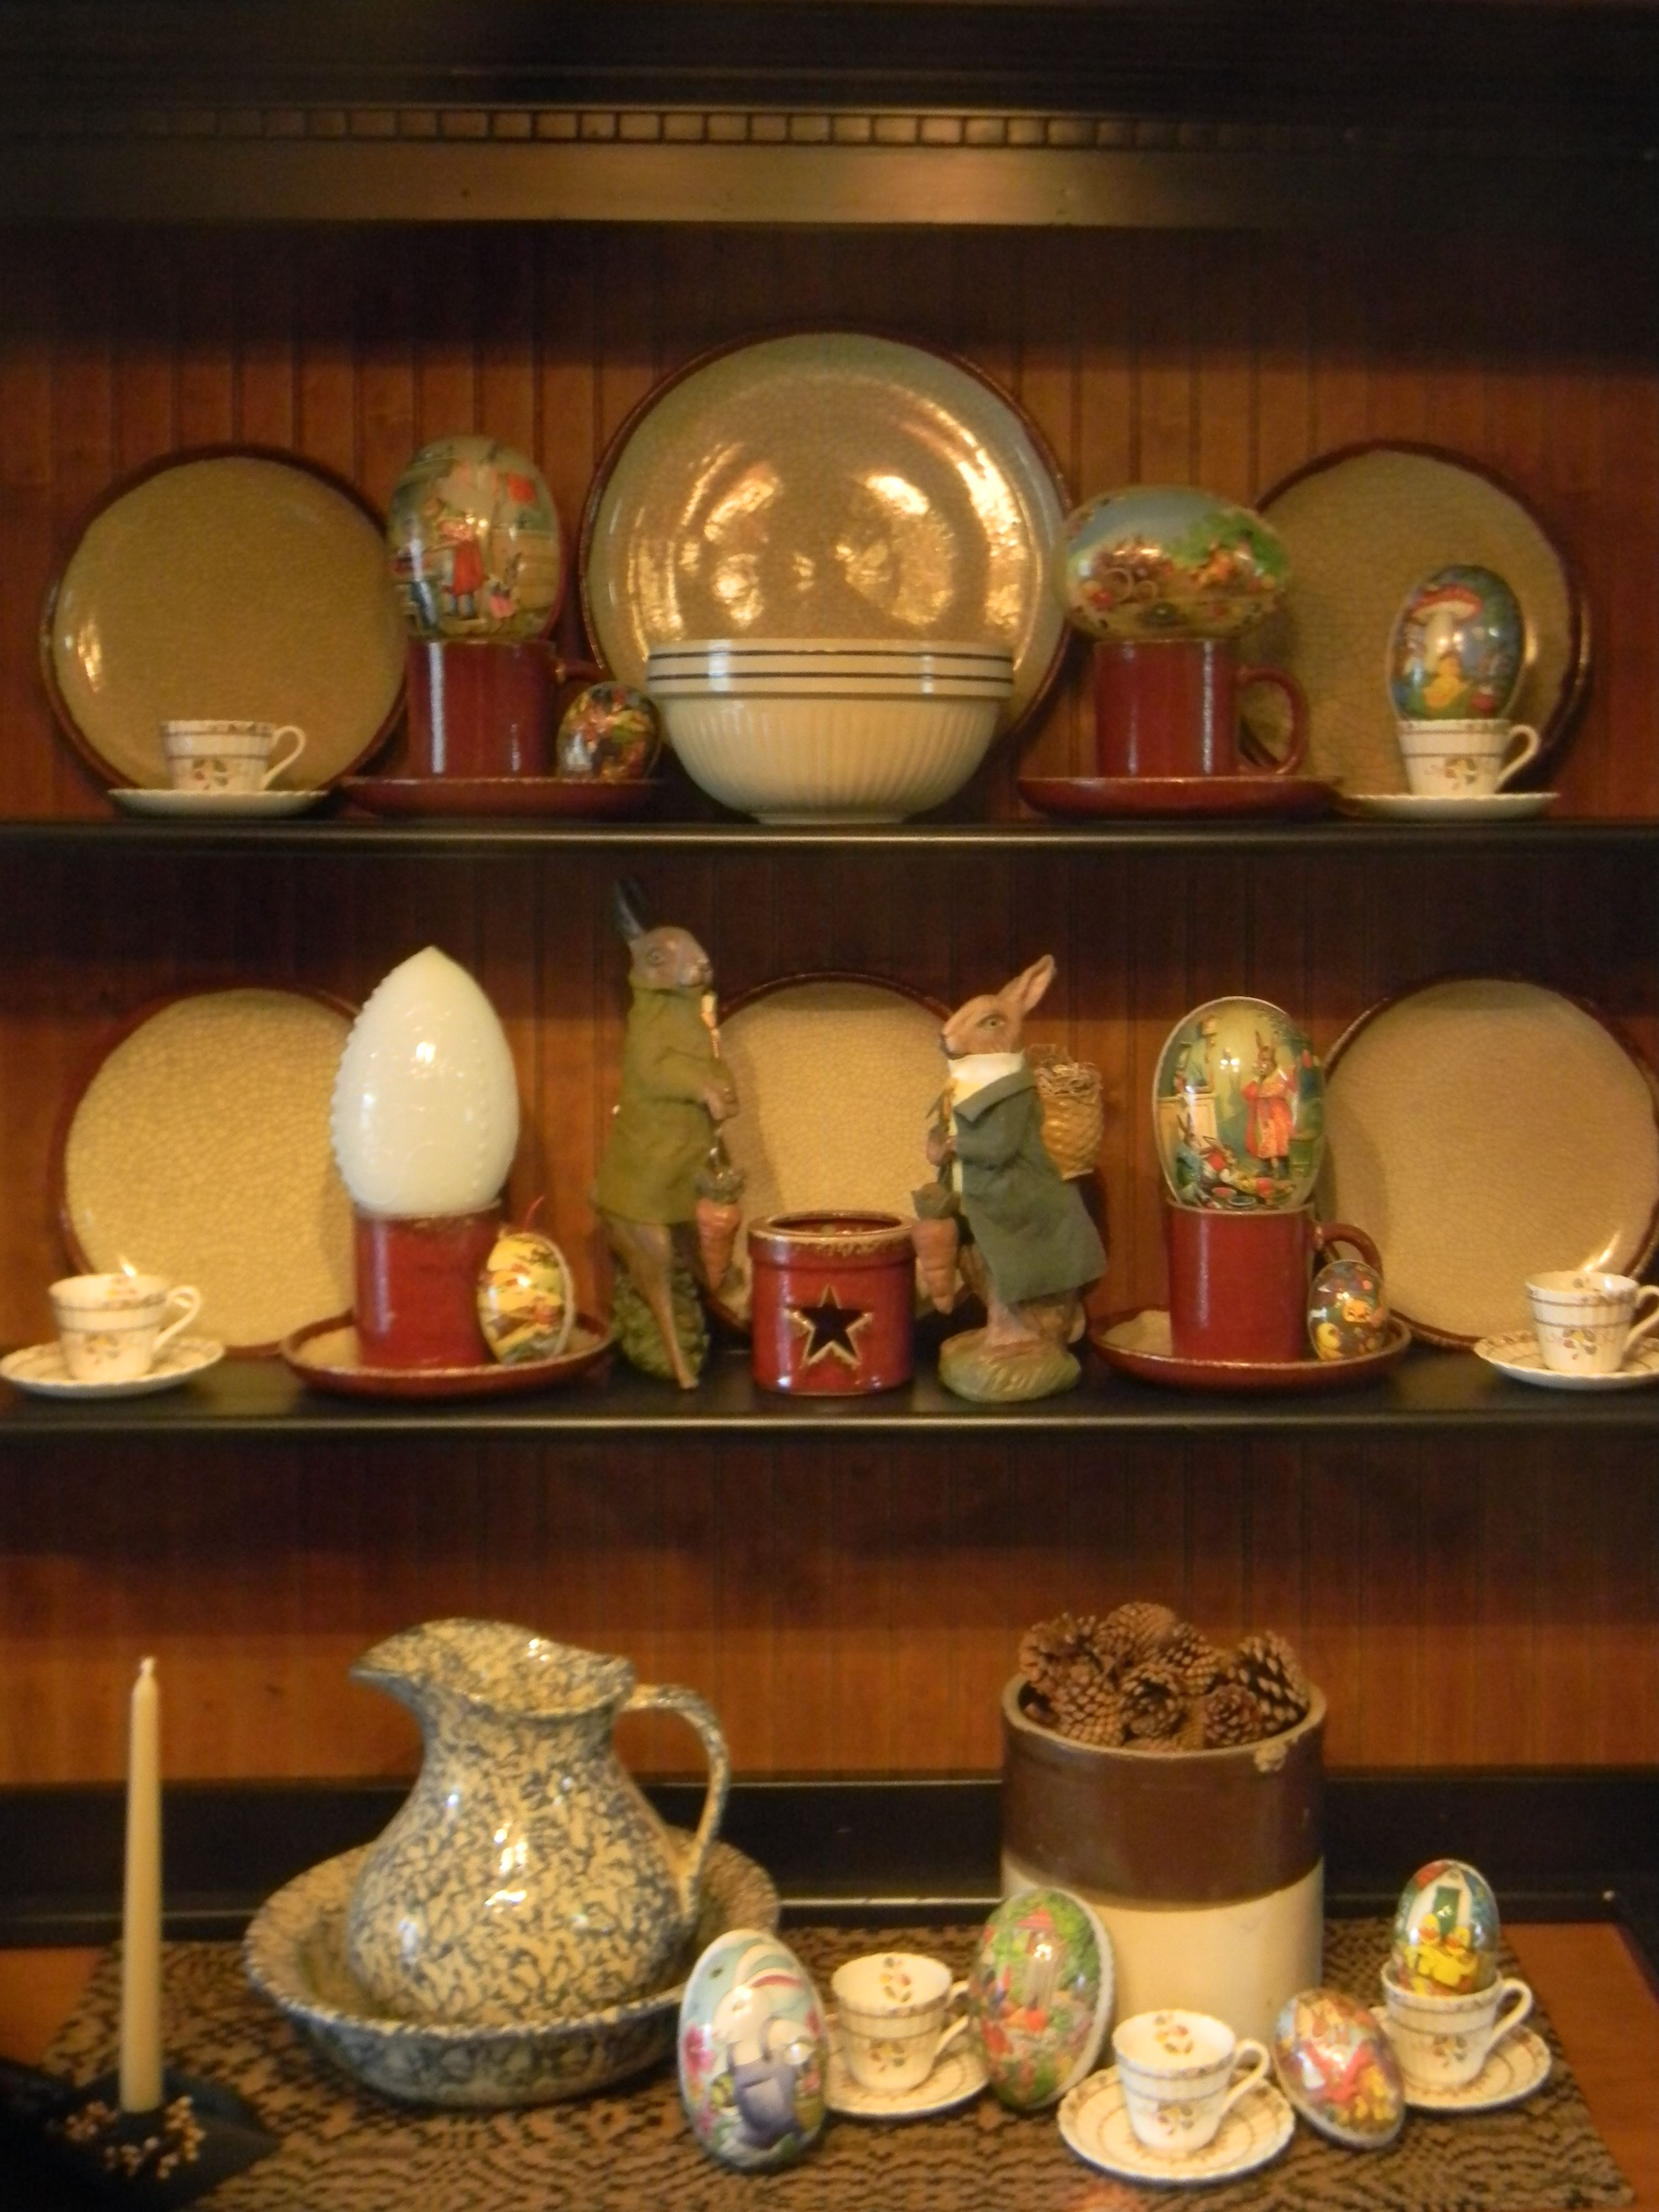 Part Of My Paper Mache Egg Collection In Dining Room Hutch They Remind Me